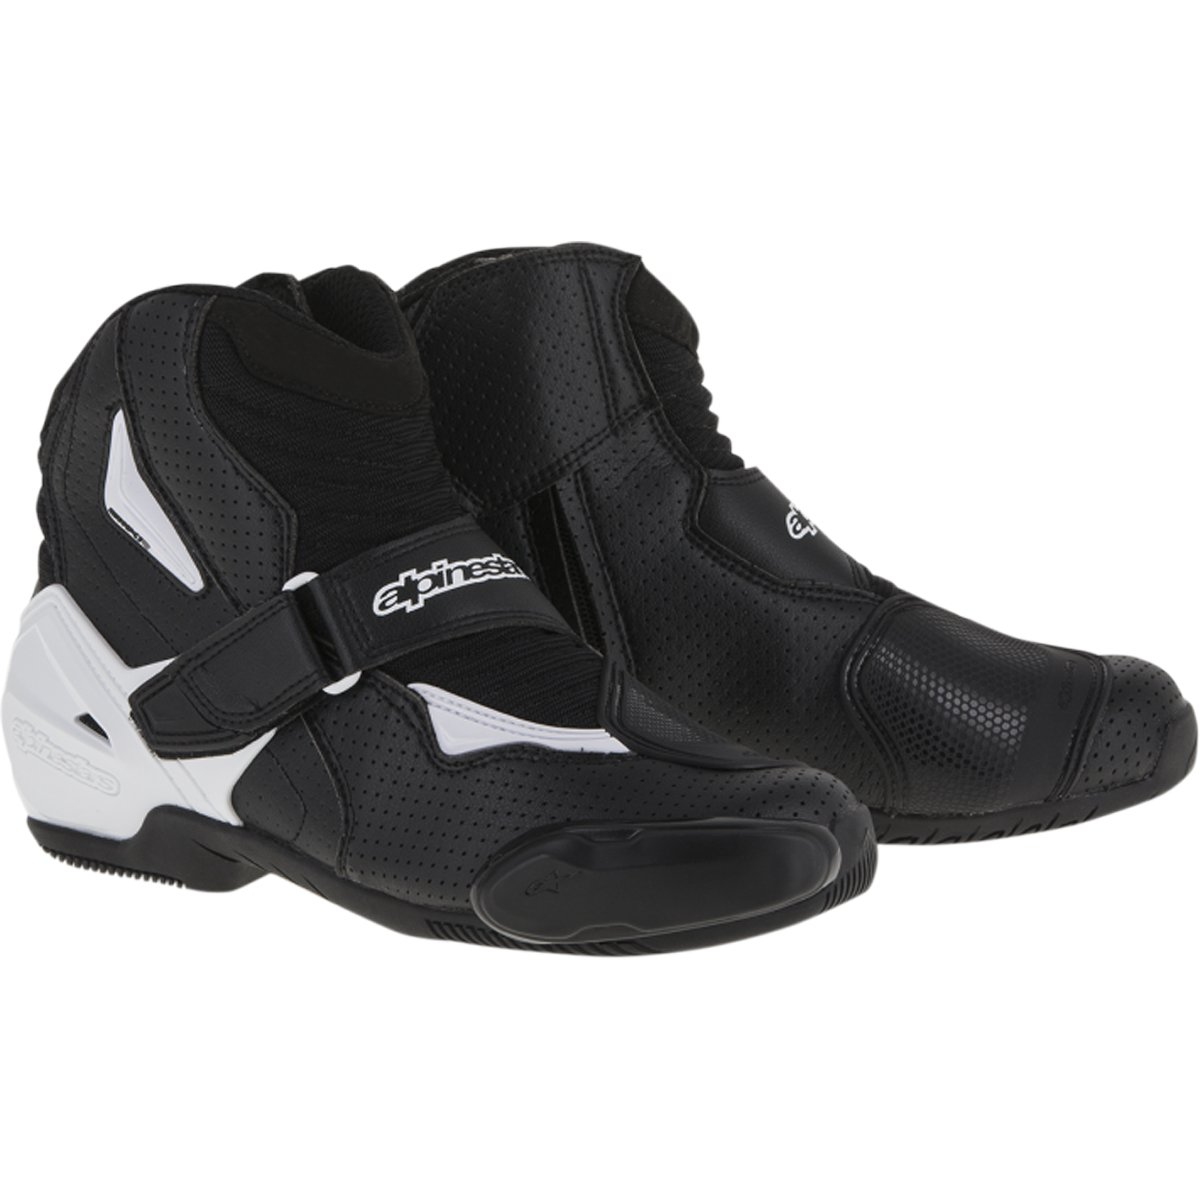 Alpinestars SMX-1R Vented Men's Street Motorcycle Shoes - Black/White / 40 by Alpinestars (Image #1)